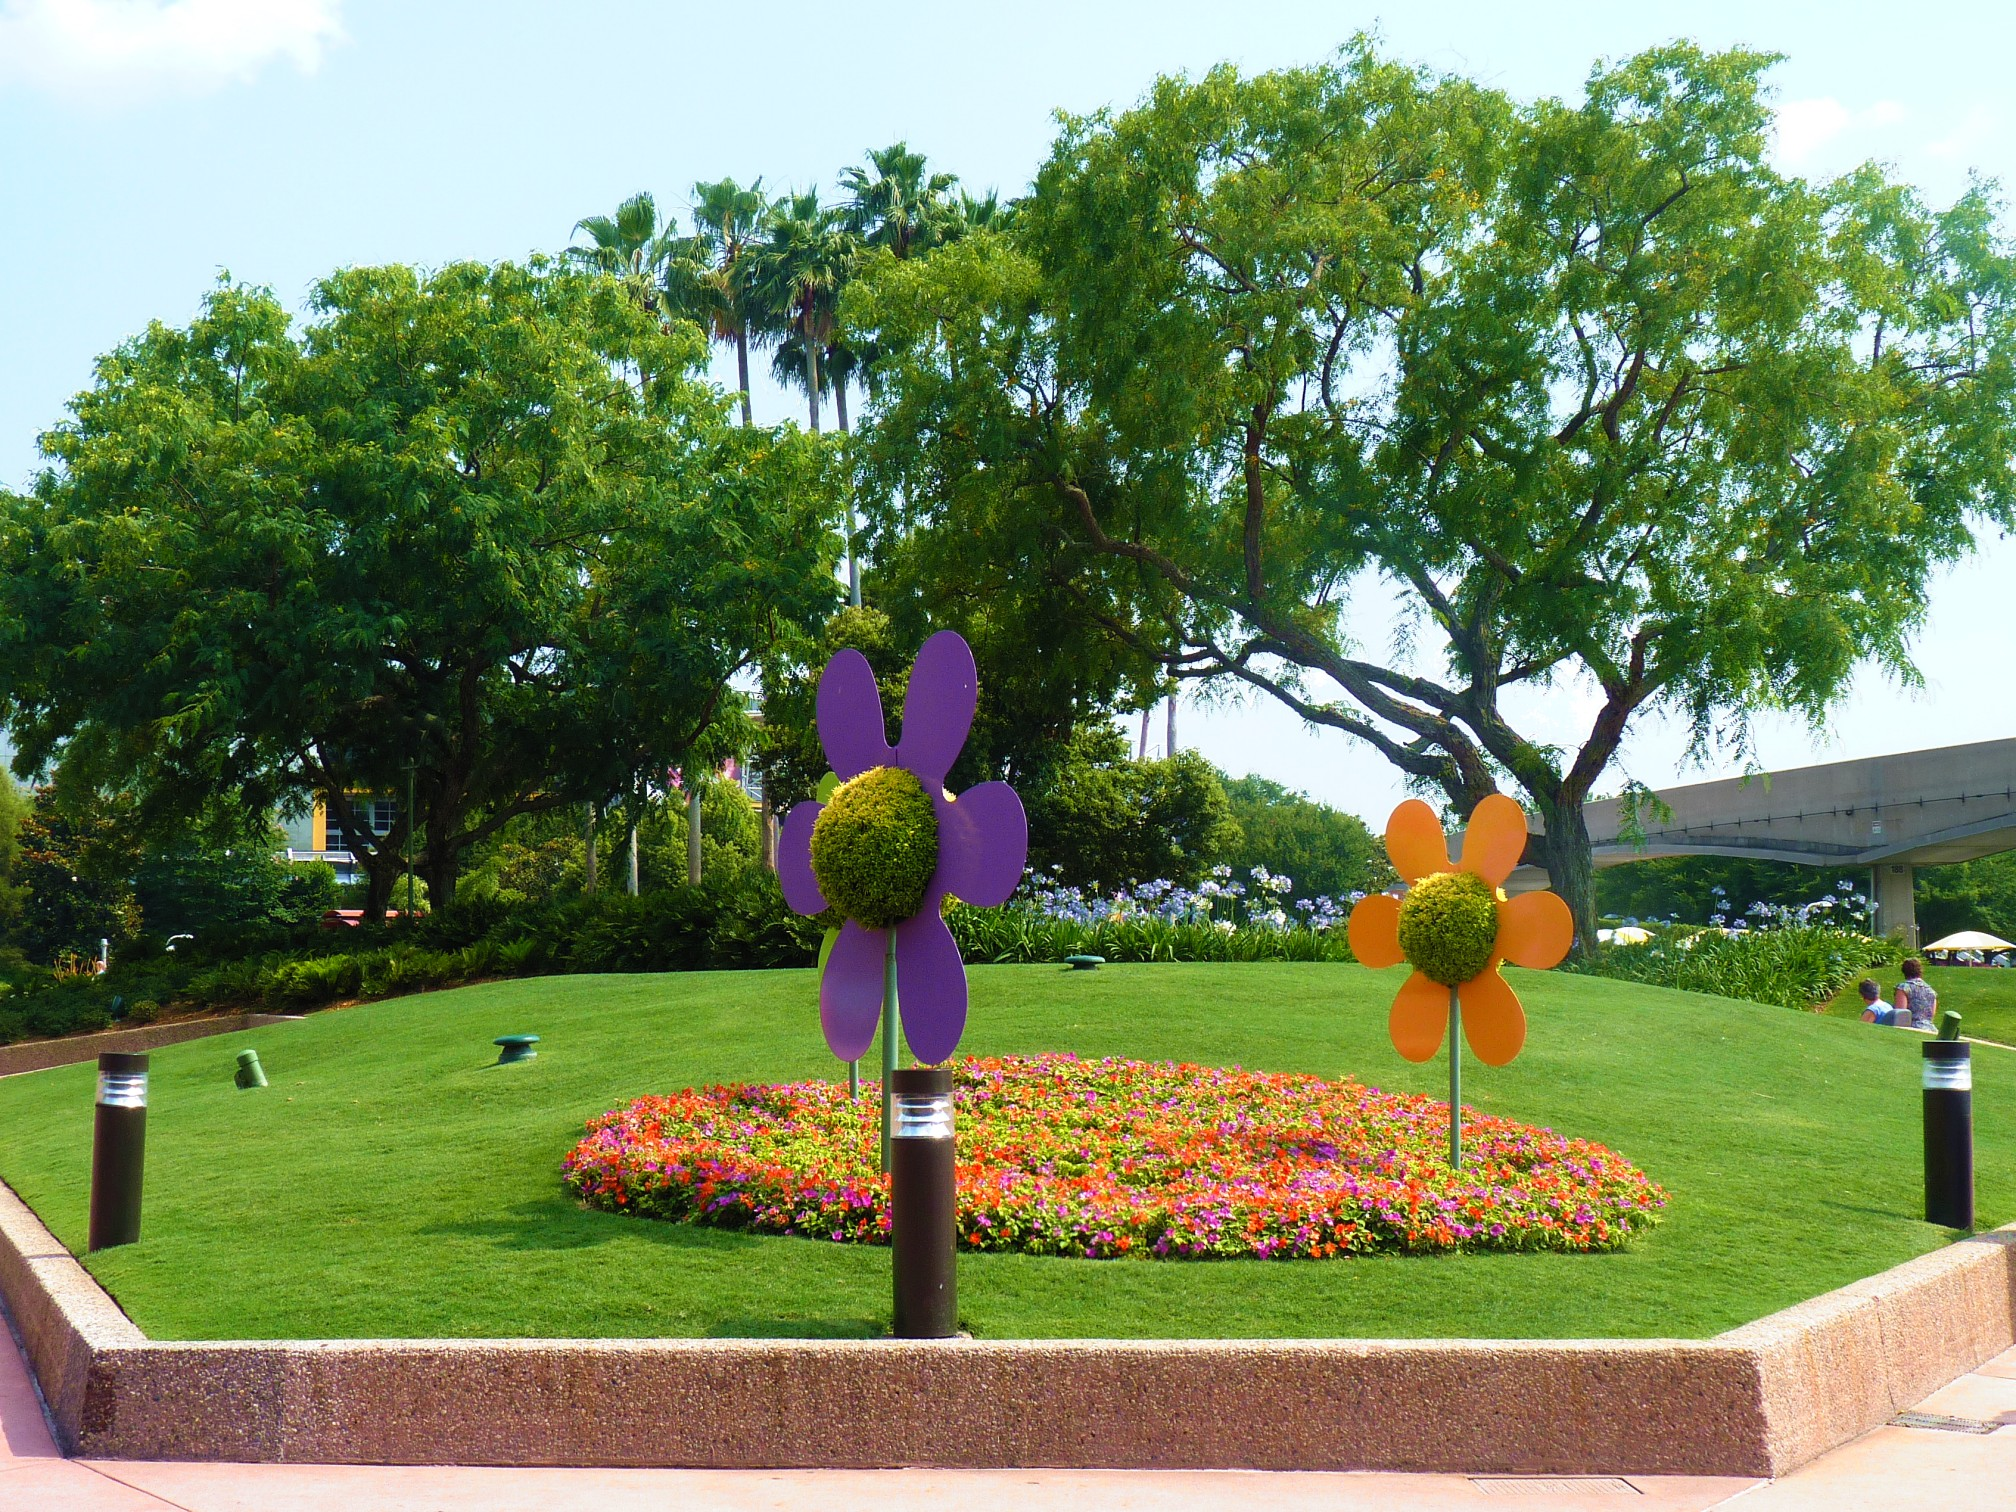 Jud's Disney Picture of the Day: Flowers and Trees